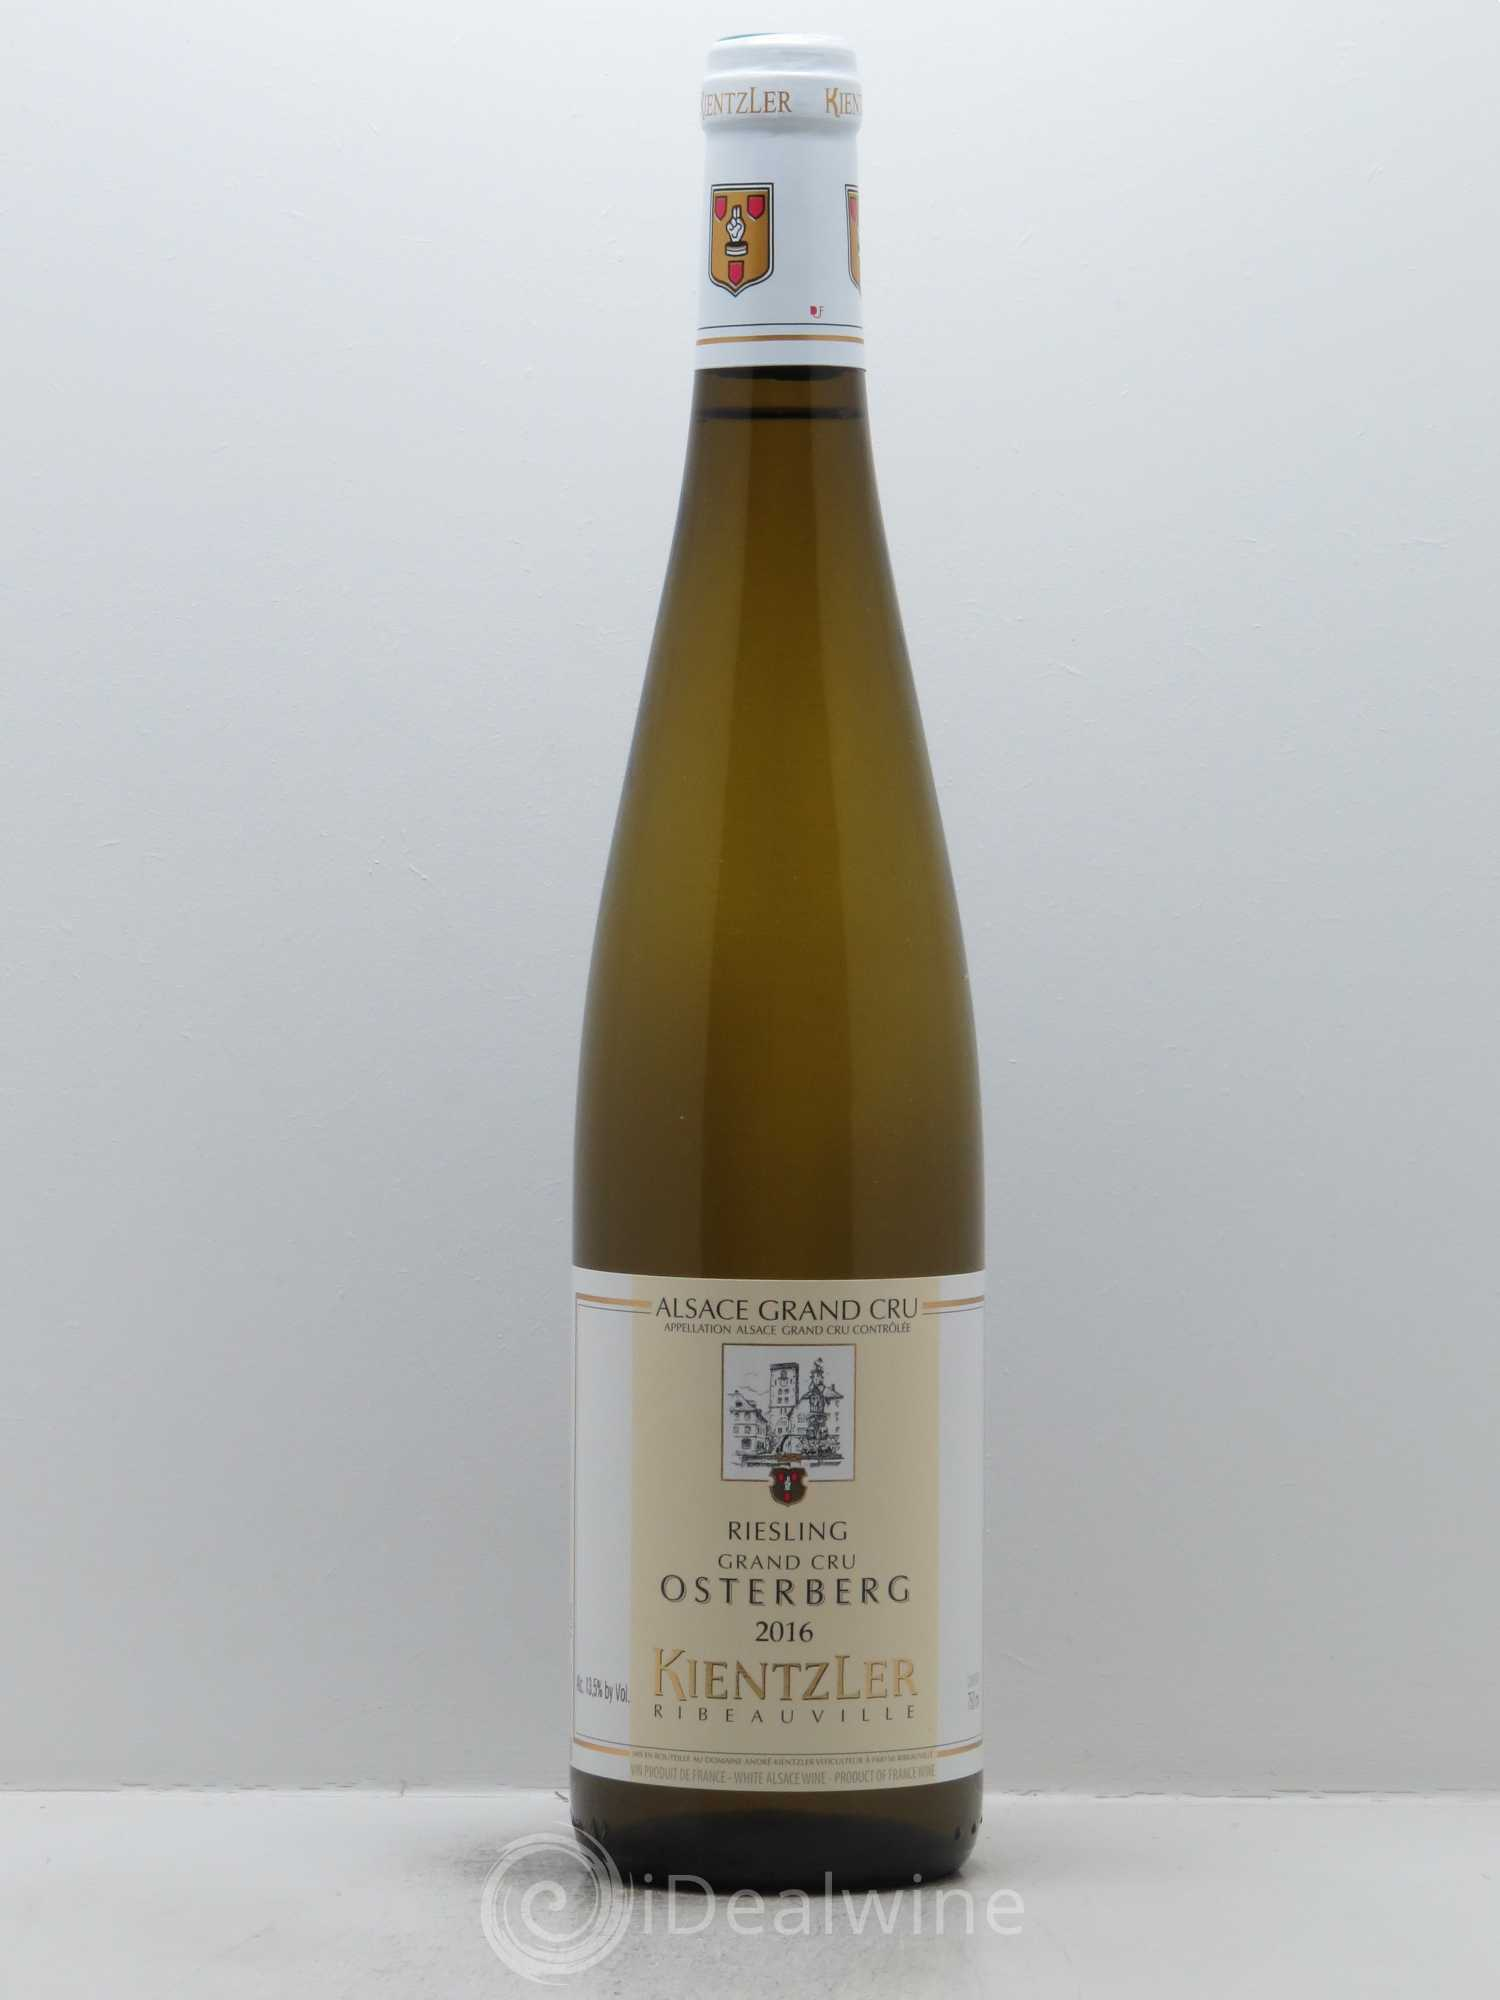 Riesling Grand Cru Osterberg Kientzler (Domaine)  2016 - Lot of 1 Bottle